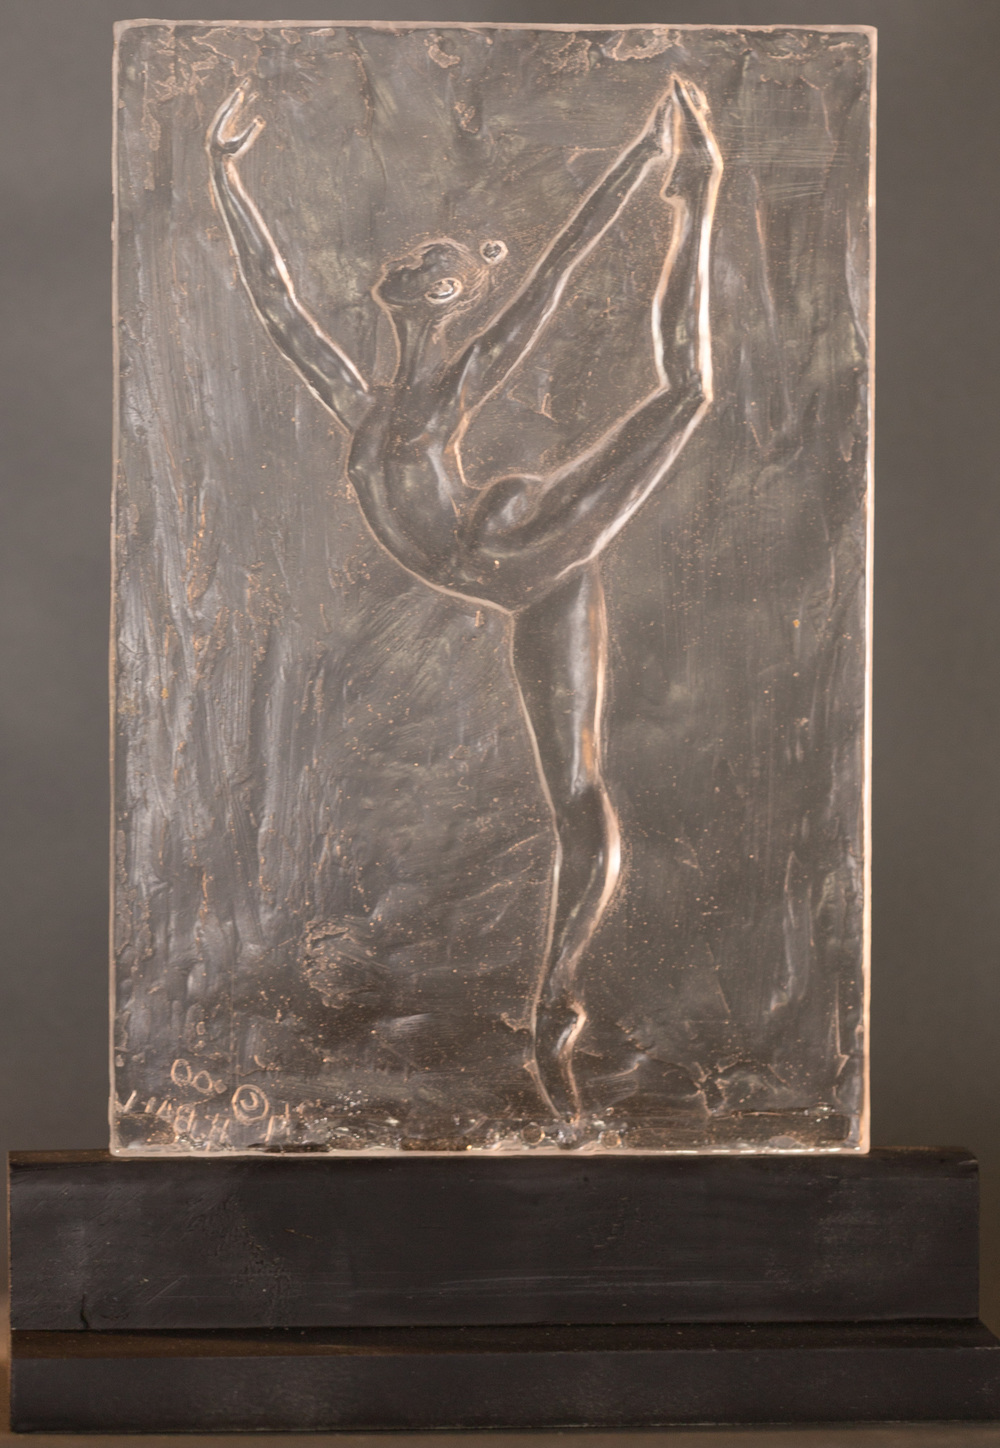 Arabesque (2000) Clear Resin, Edition: 30, 13.5x9x5in. $900